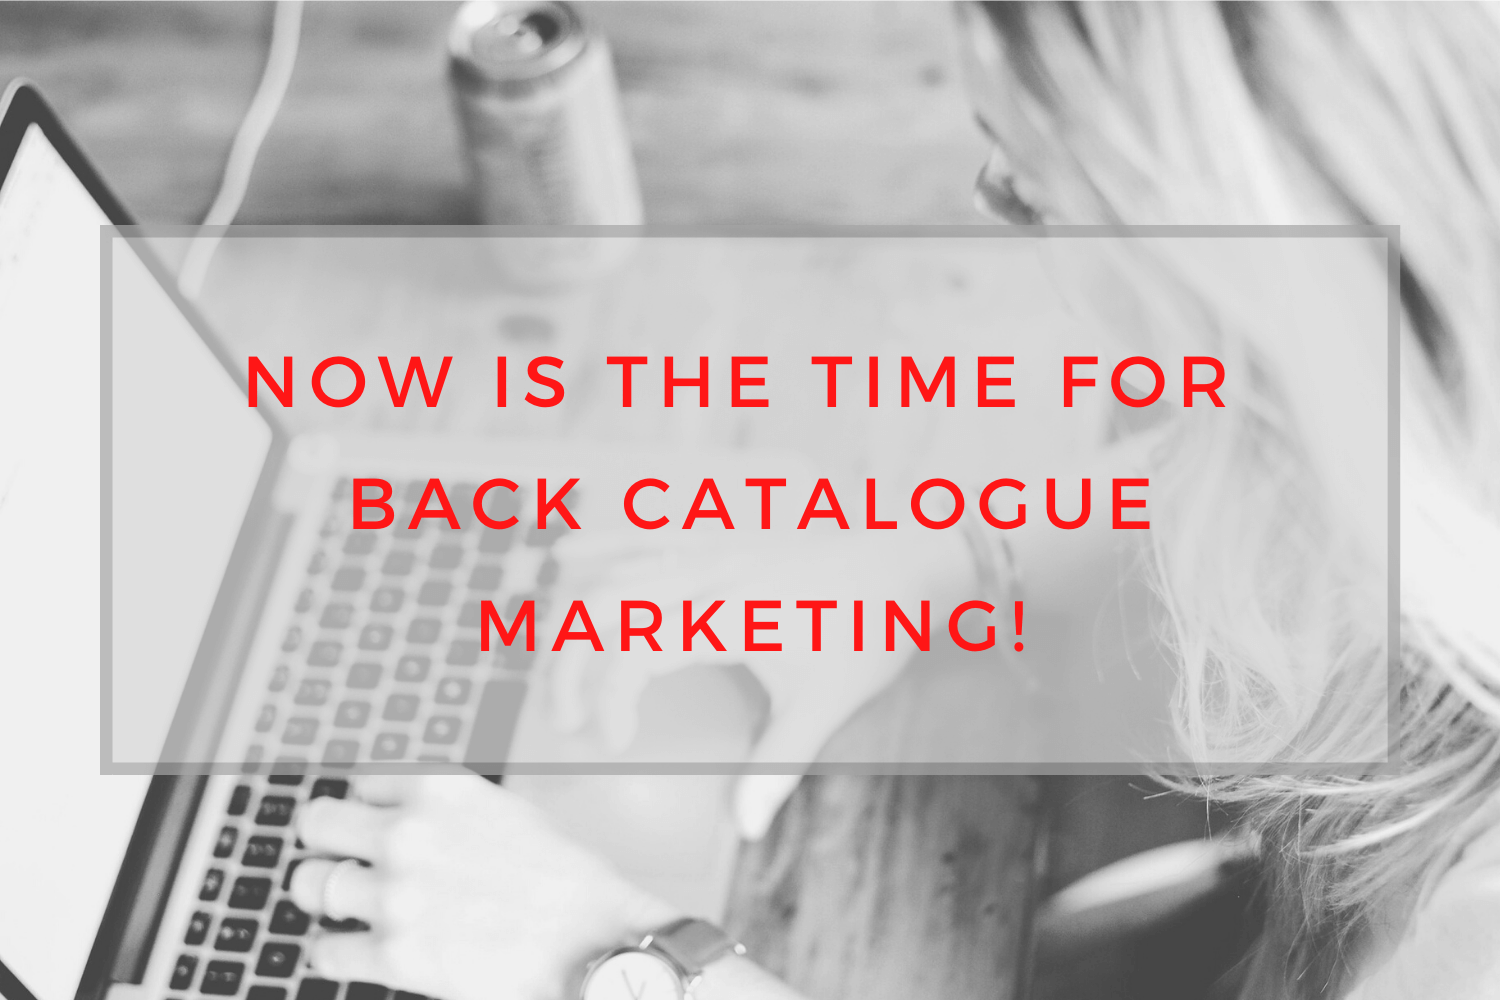 Now Is The Time For Back Catalogue Marketing, Spotify Image Sizes, saralenaprobst.com, Blog about Music, Music Blog, BlackbirdPunk, Blackbirdpunk Consulting, Digital Consulting for the Music Industry, music industry digital entertainment agency, Berlin, berlin, digital, work digital, freelancer digital music industry